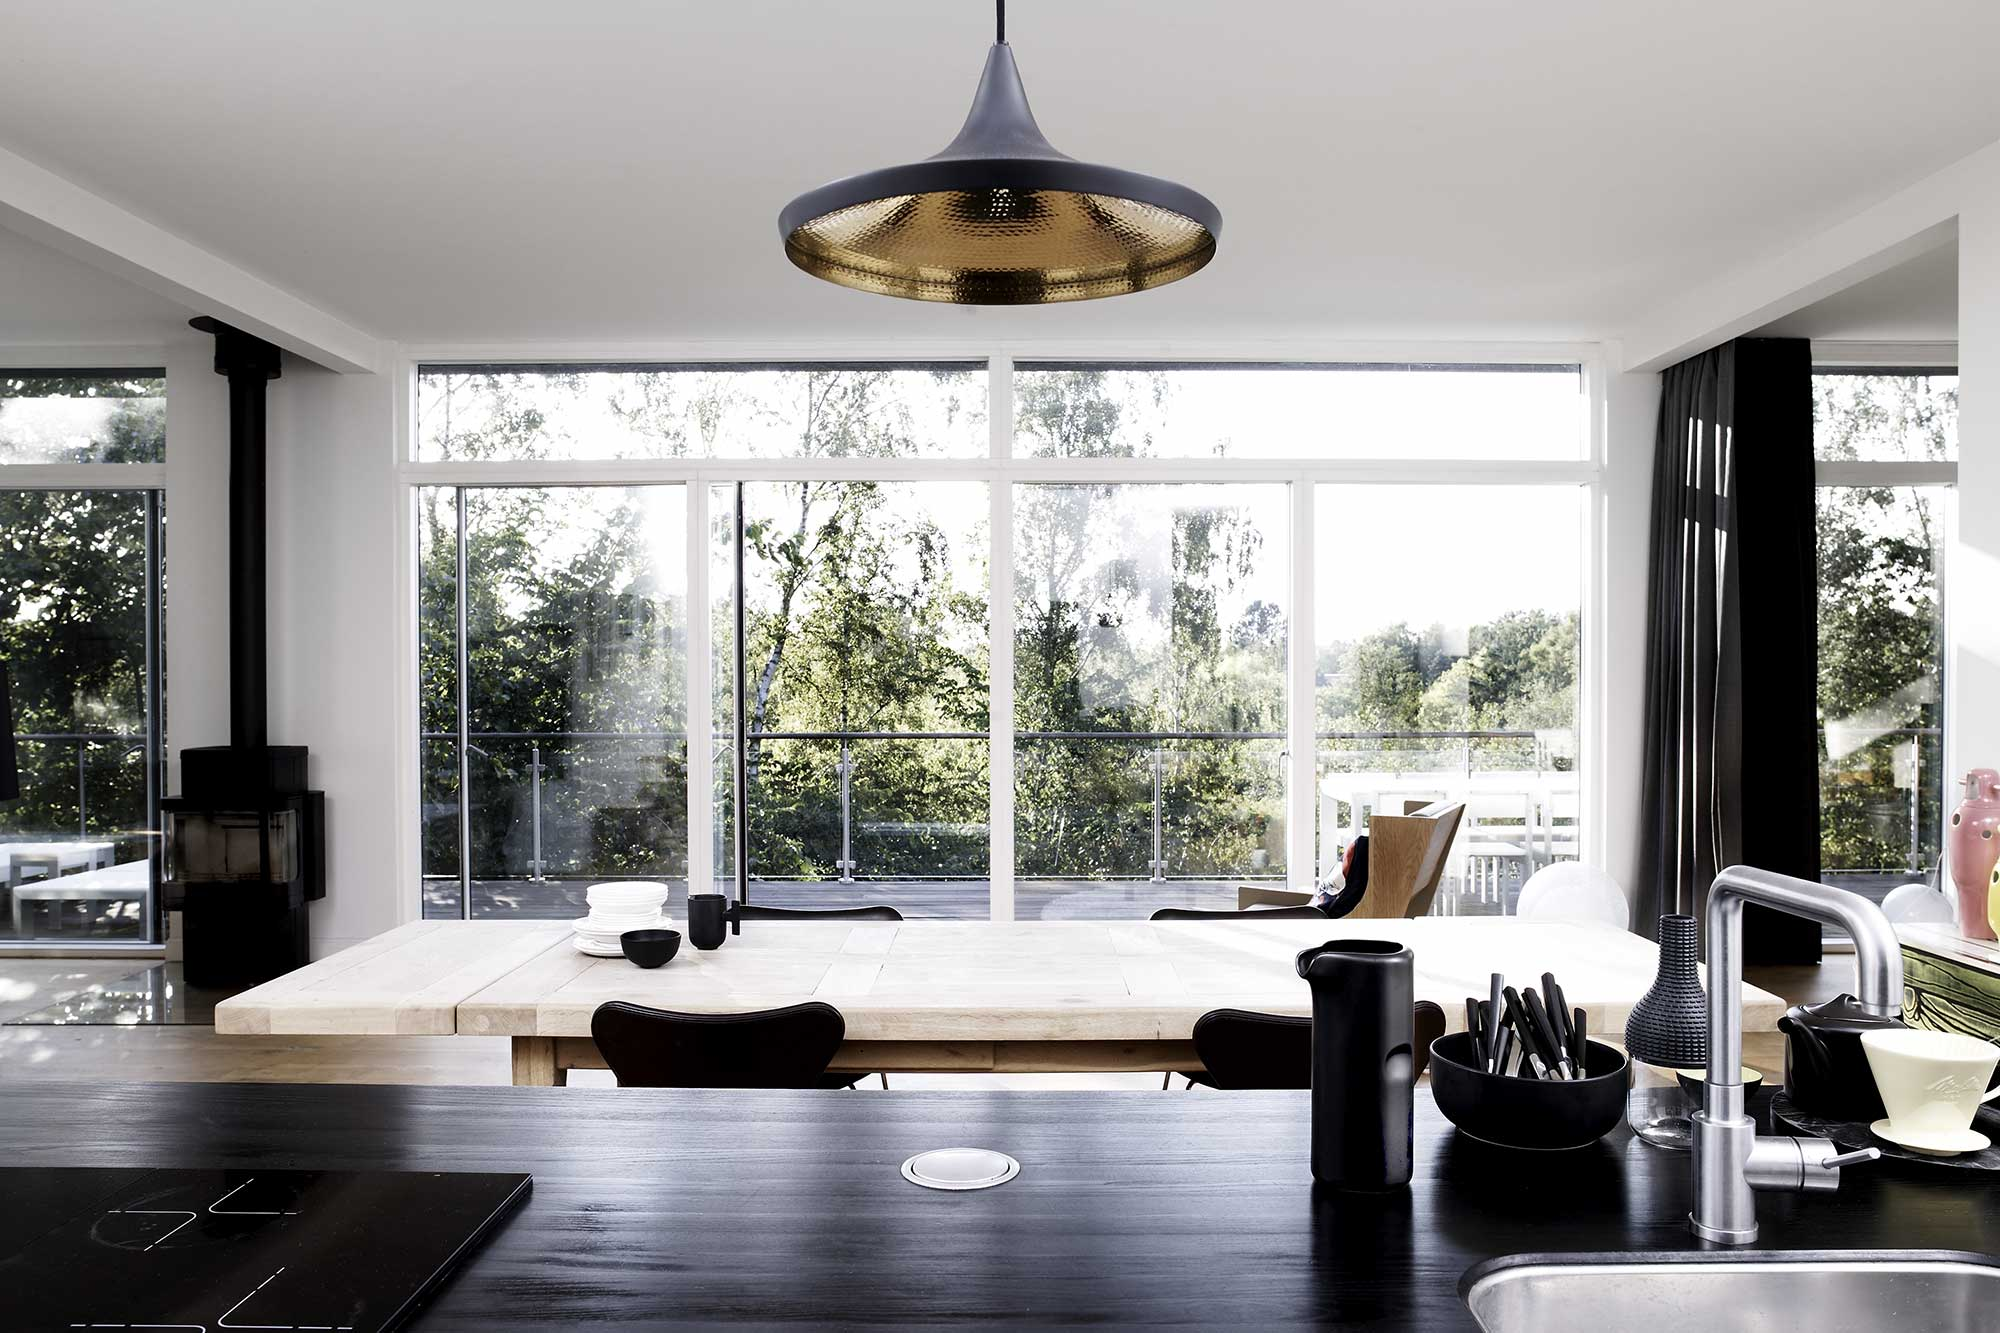 Northern Zealand Villa - Interior/Residential